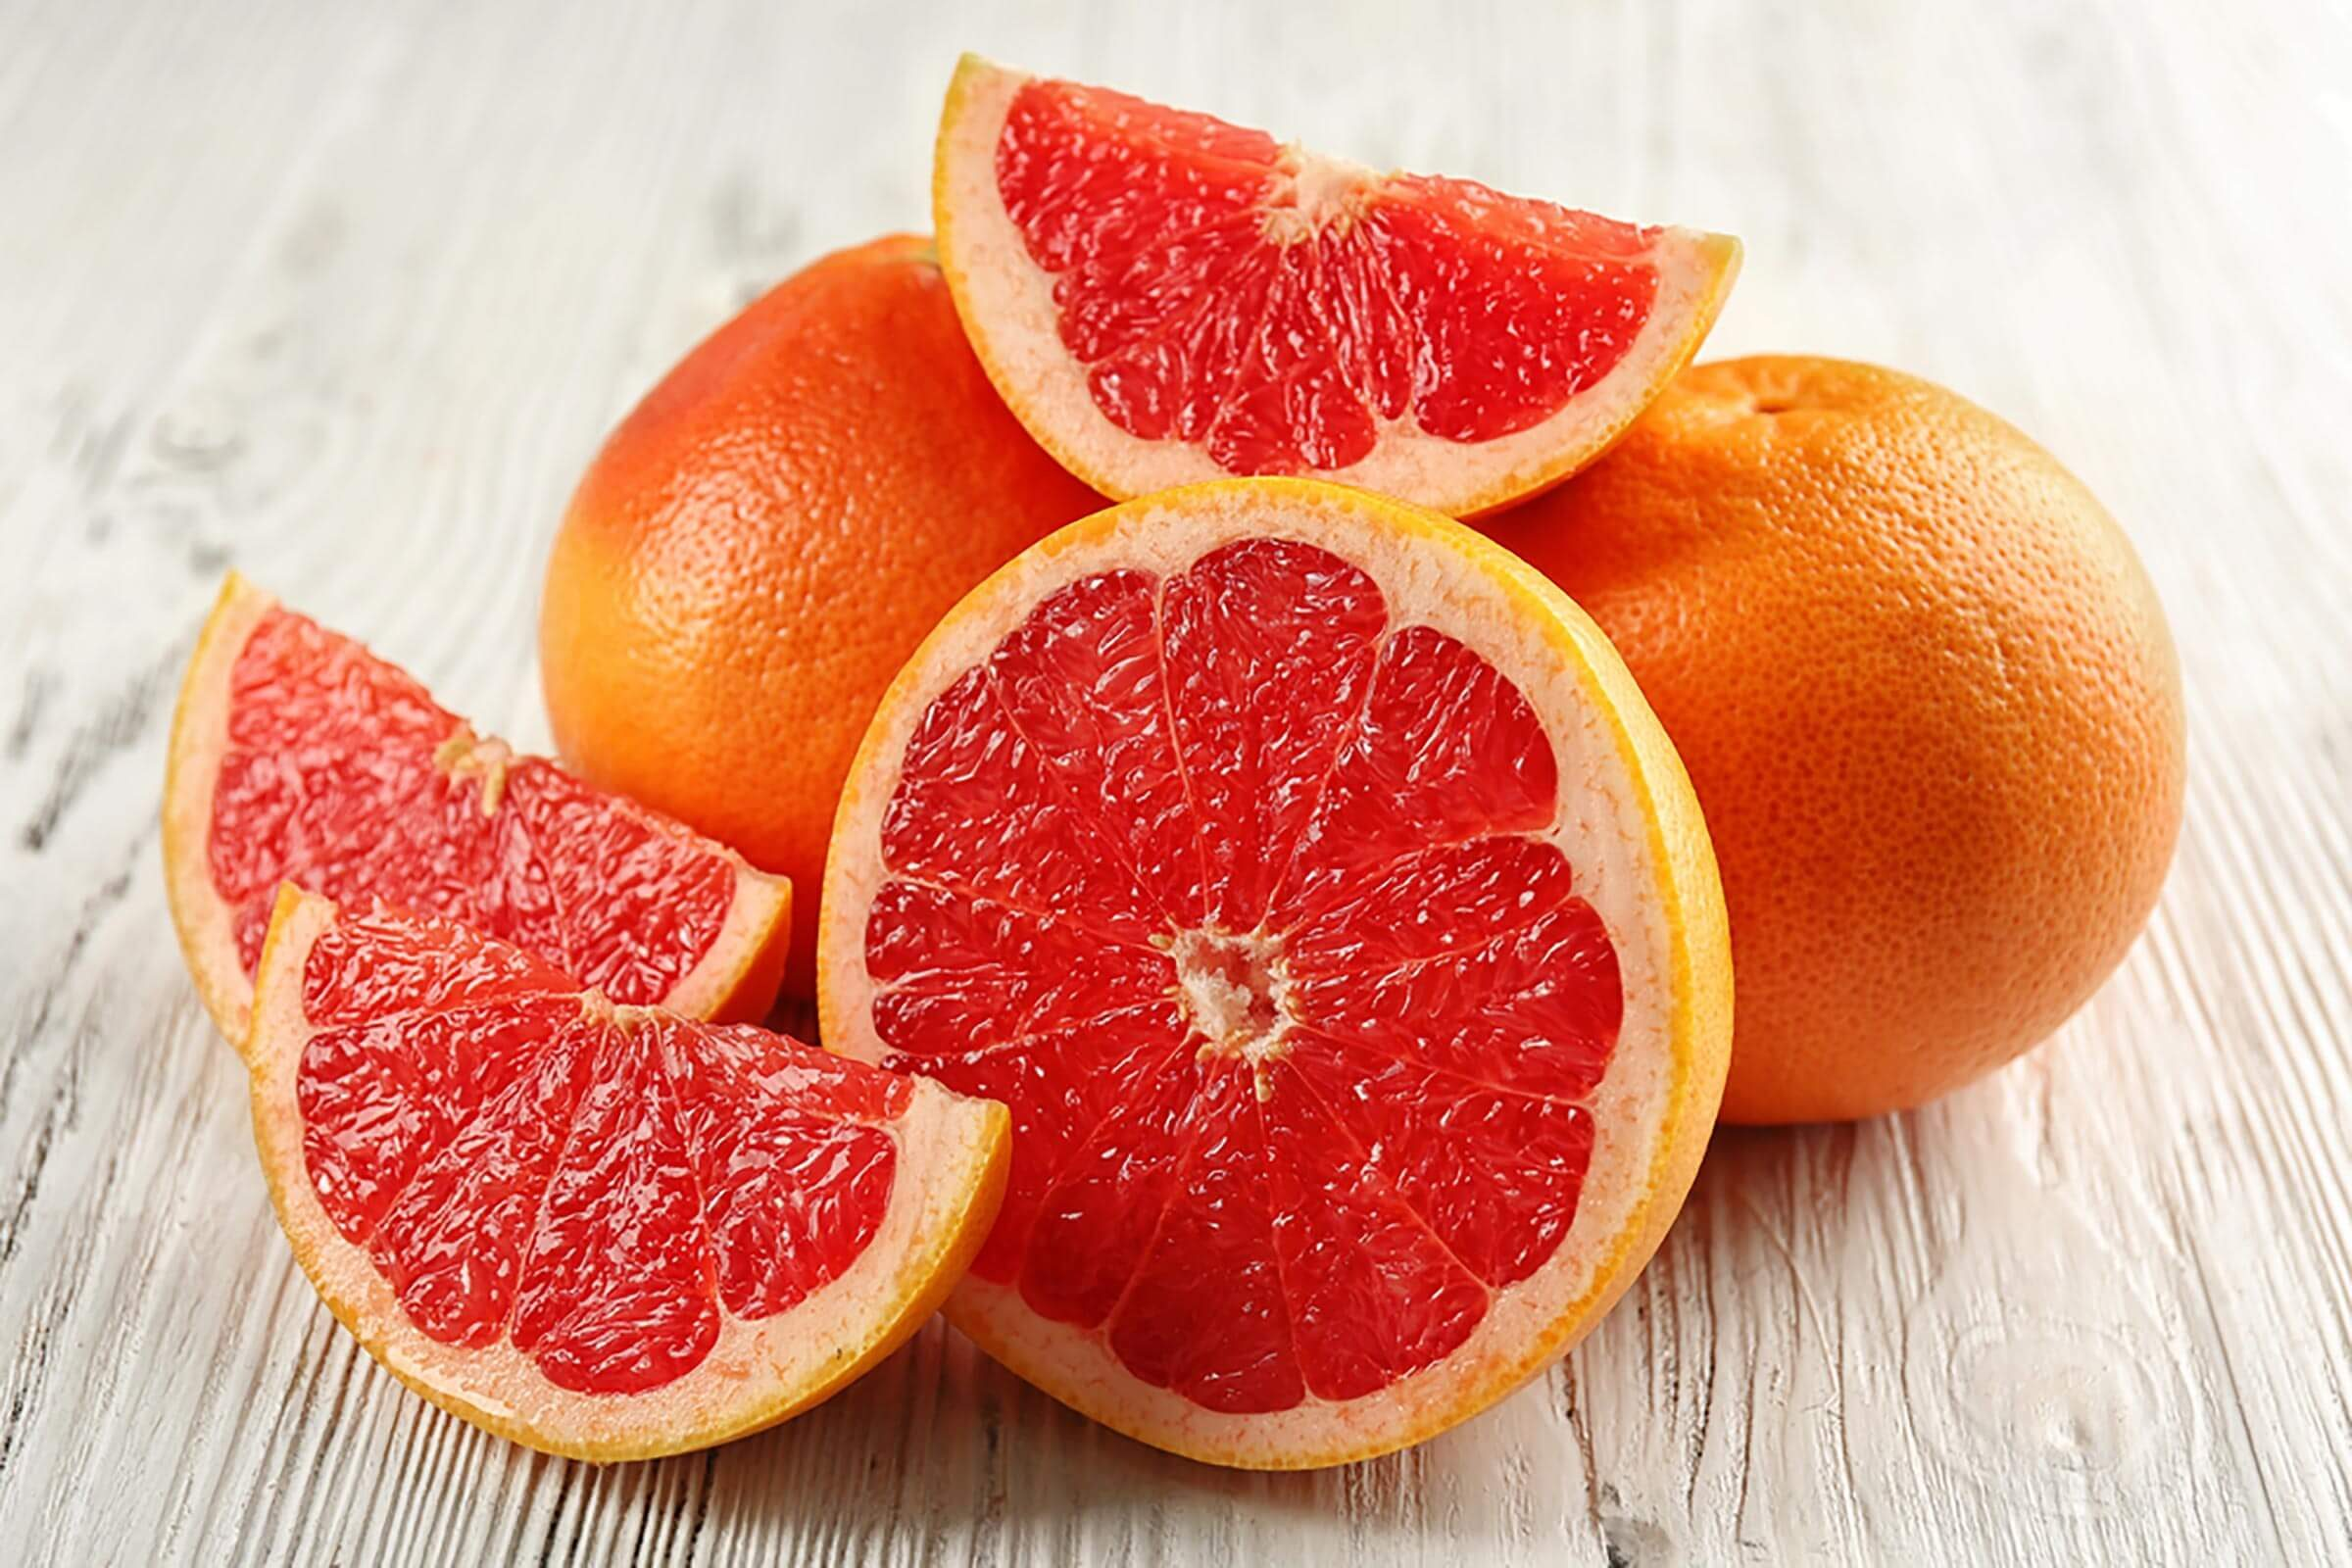 The Healthiest Fruits for Your Body | Reader's Digest